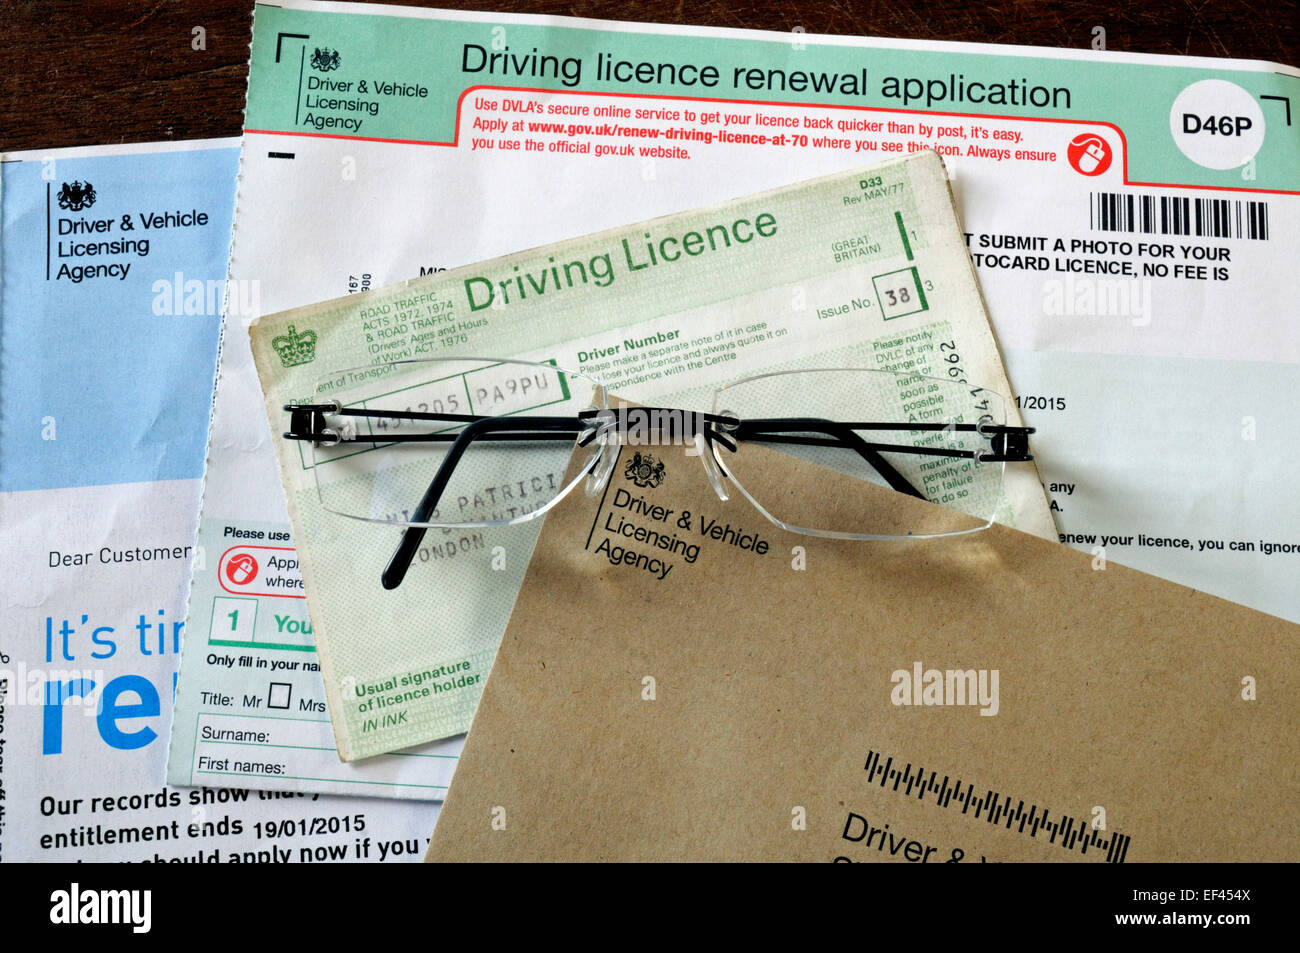 renew driving licence at 70